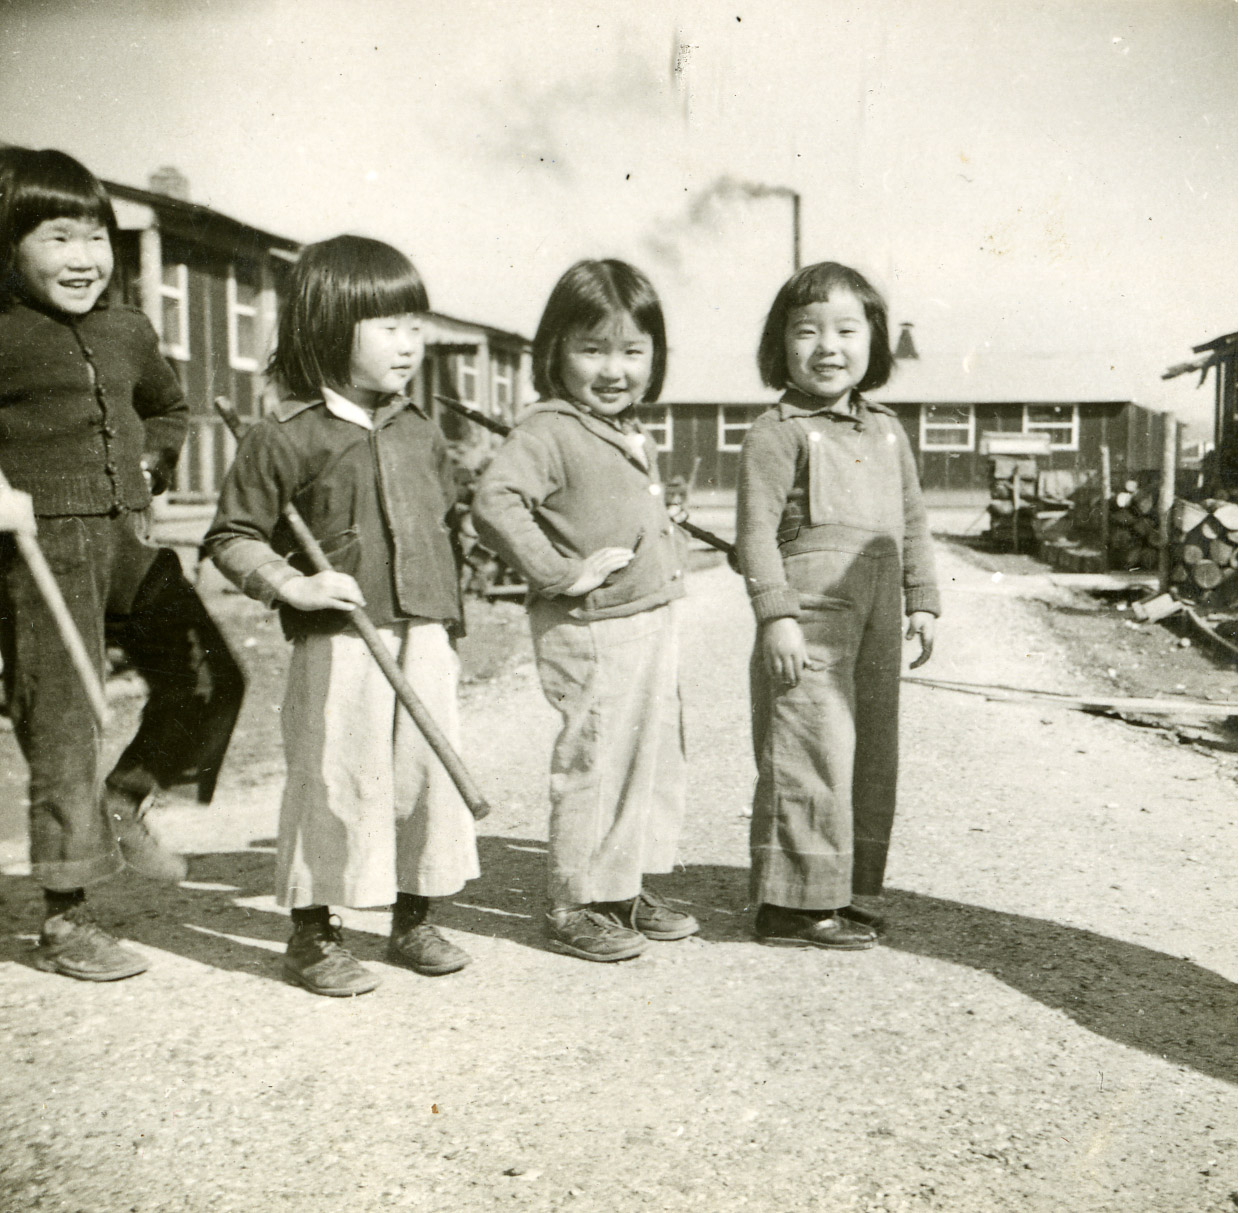 Female children at the Jerome incarceration camp